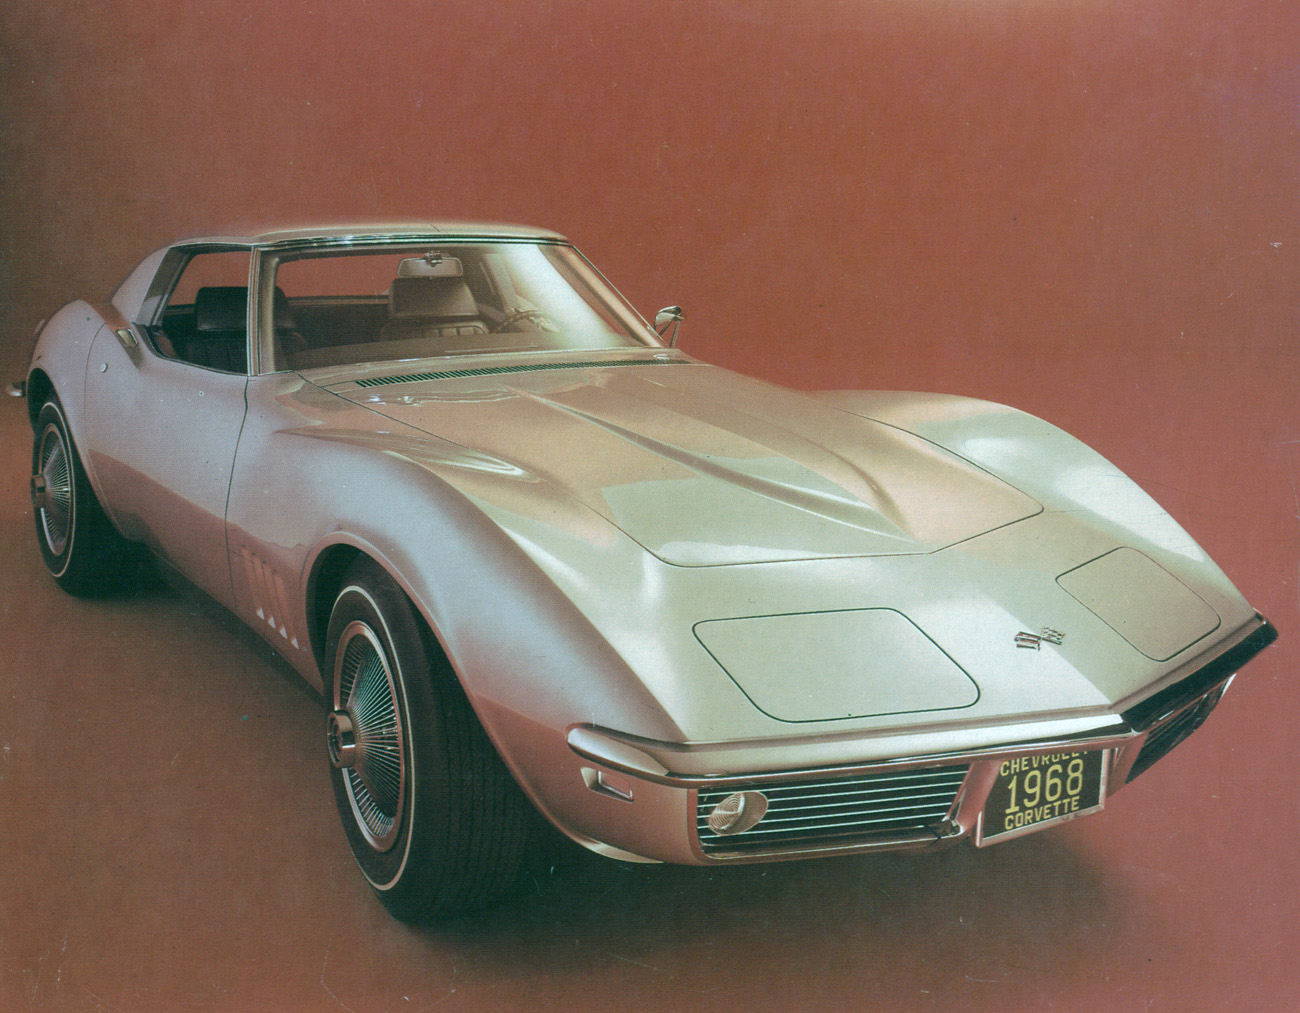 Lost Star Cars The Jimi Hendrix Corvettes Slight Reprise 1960 Pontiac Catalina Wiring Diagrams His Second Corvette Was Metallic Silver In Color And Spent Time Shokan New York City 1969 1970 Car Last Seen Public At Harlem Music